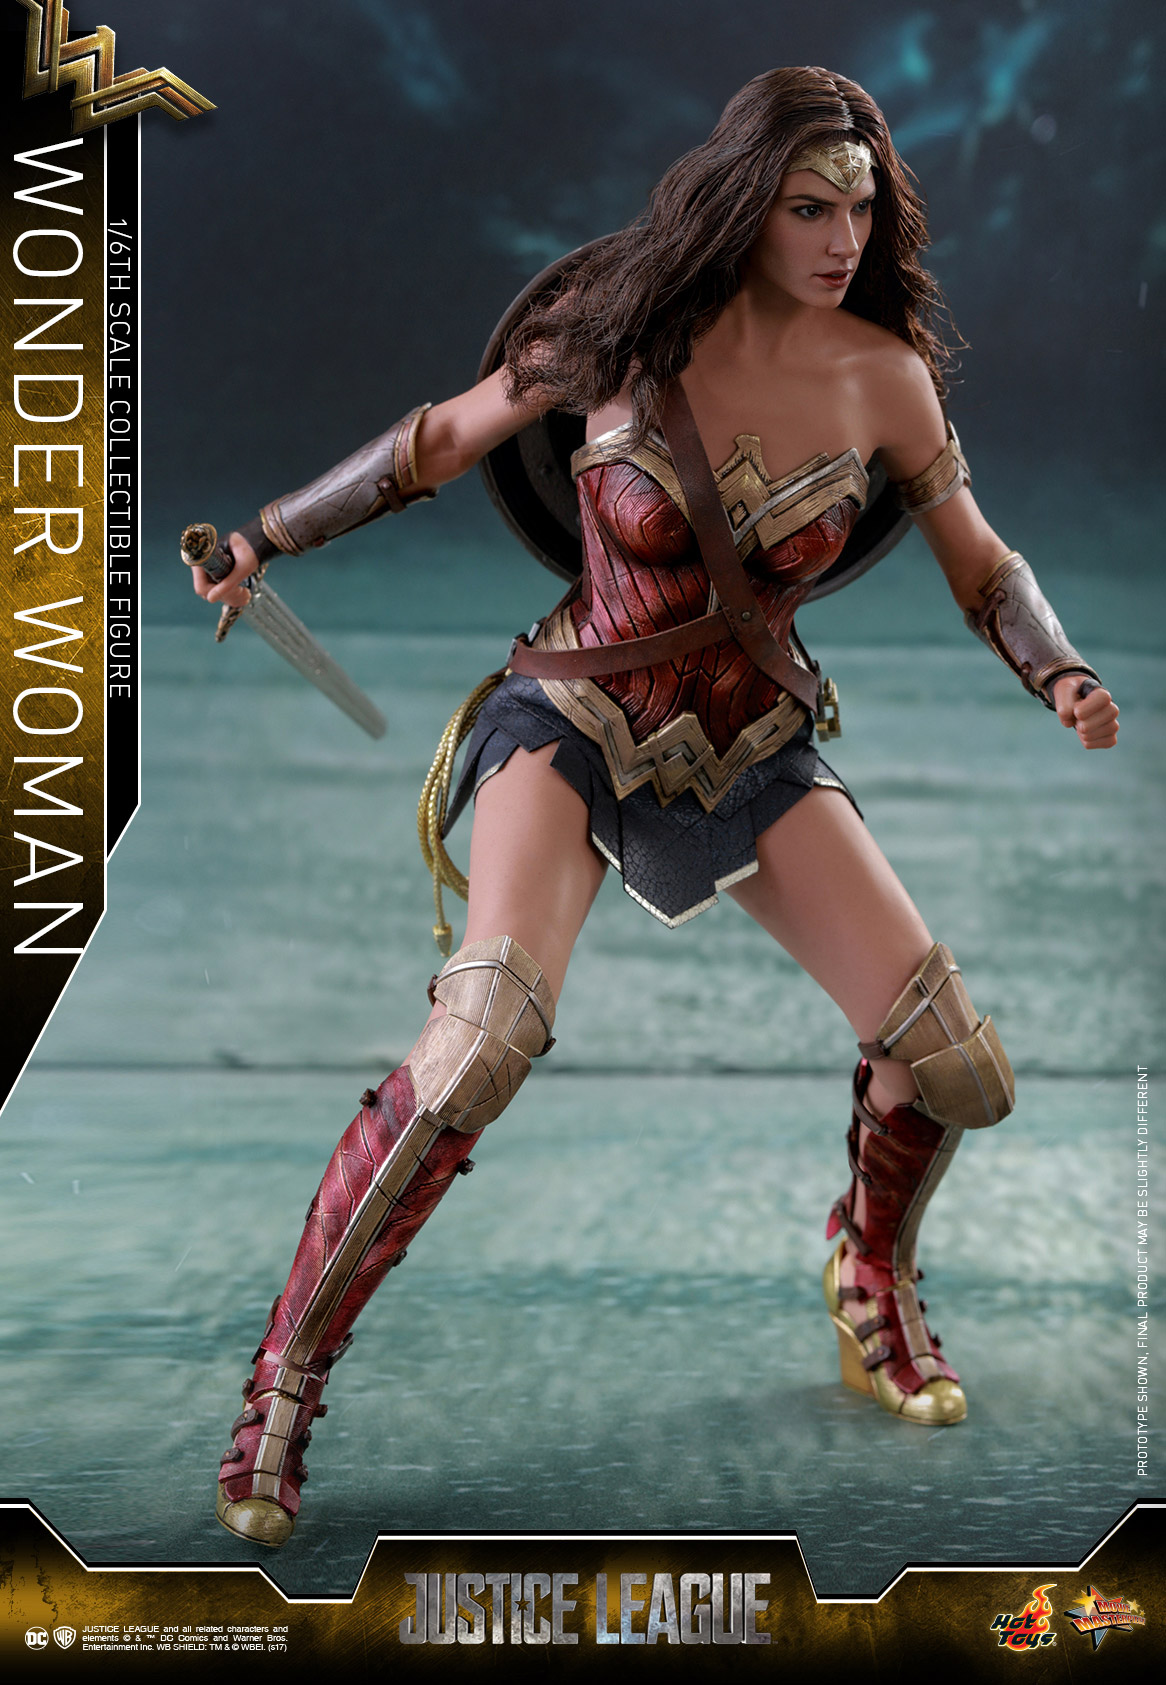 Hot-Toys-Justice-League-Wonder-Woman-collectible-figure_PR3.jpg